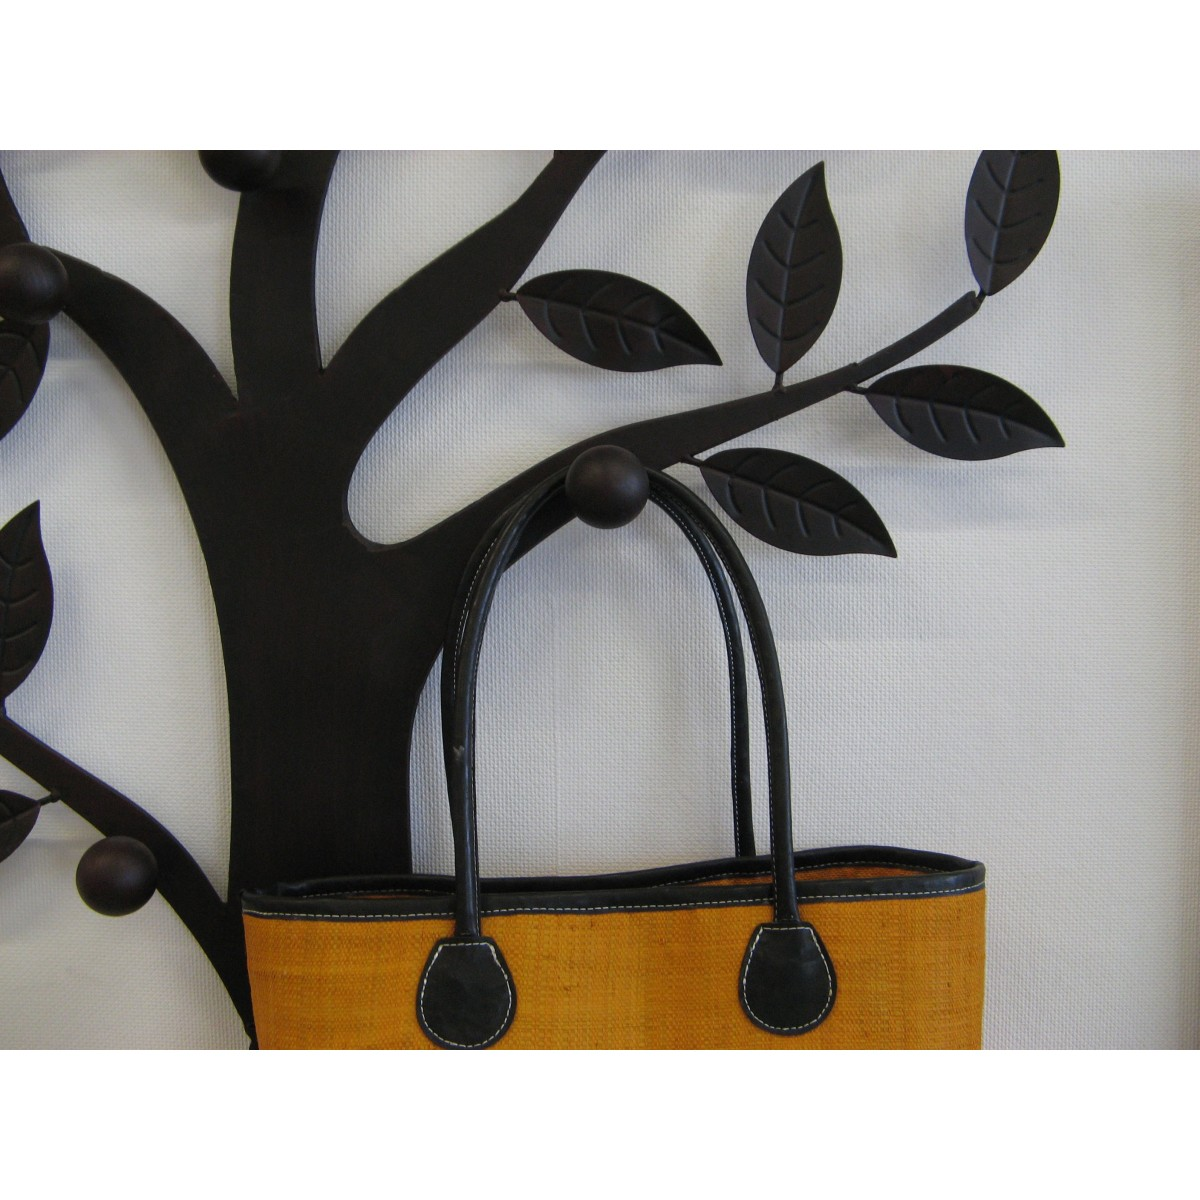 porte manteau arbre m tal murale d coratif 7 pat res marron. Black Bedroom Furniture Sets. Home Design Ideas